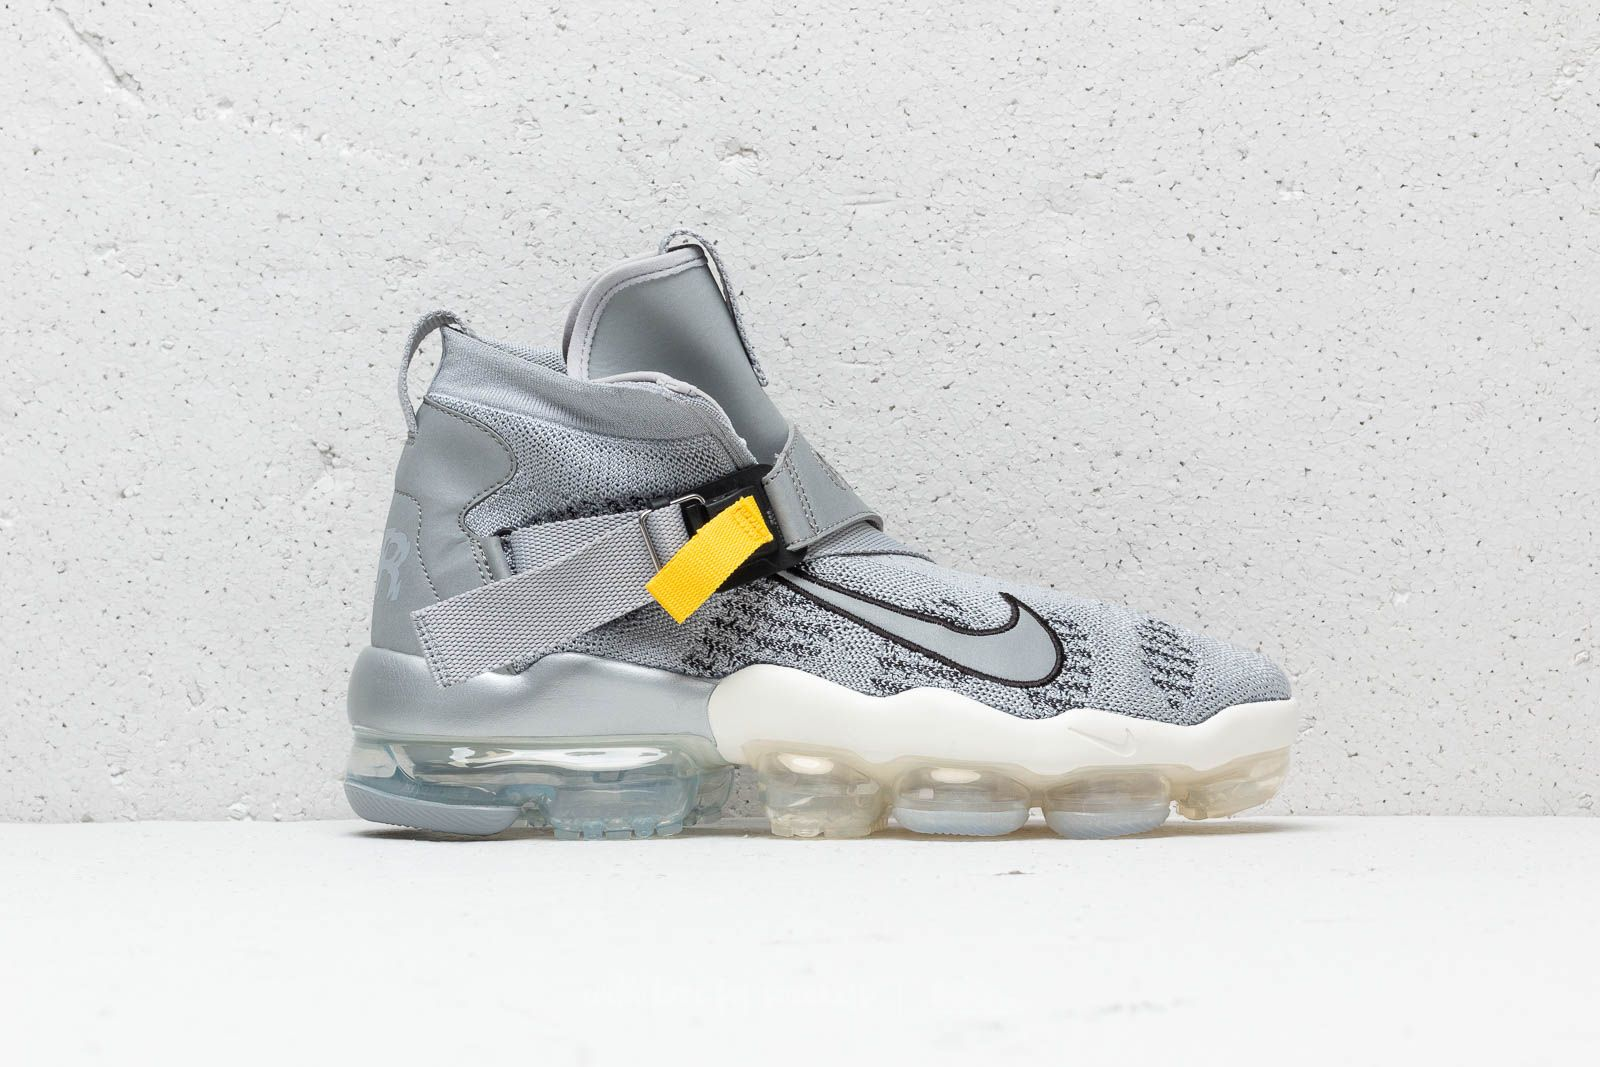 c39f237599c7 Nike Air Vapormax Premier Flyknit Wolf Grey  Metallic Silver at a great  price 227 €